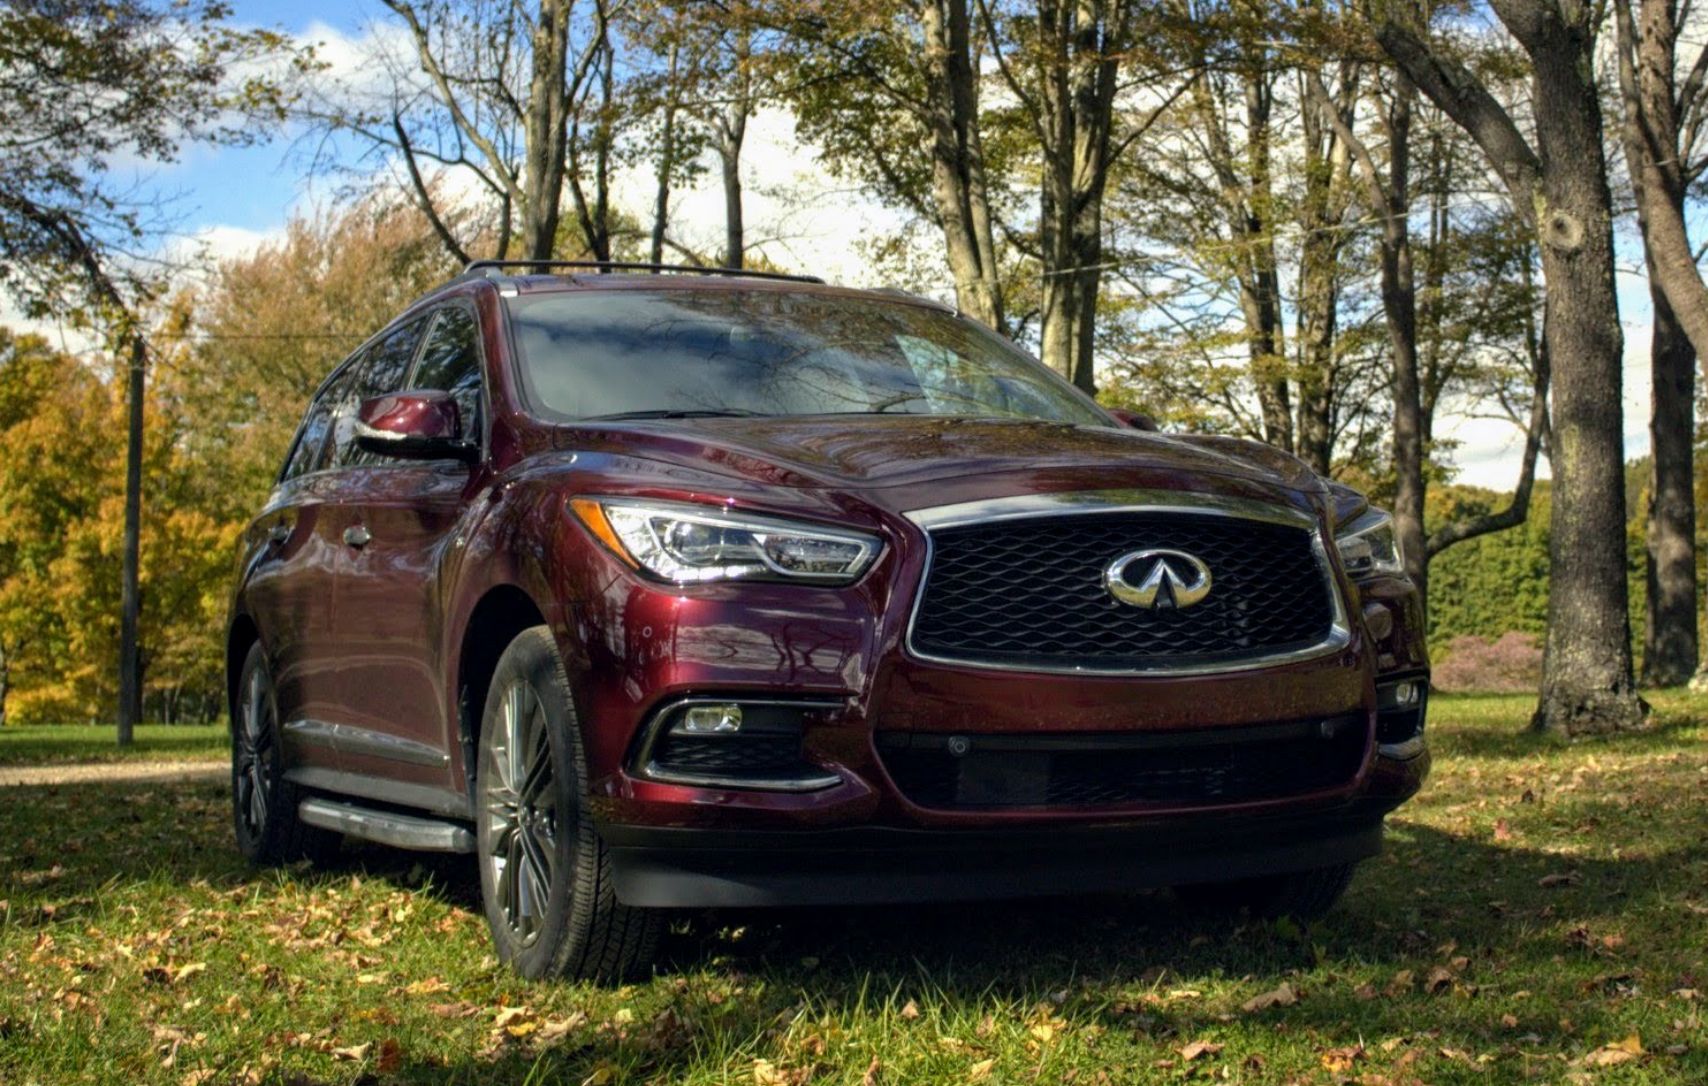 18 All New Best 2019 Infiniti Wx60 Redesign Price And Review Pictures with Best 2019 Infiniti Wx60 Redesign Price And Review